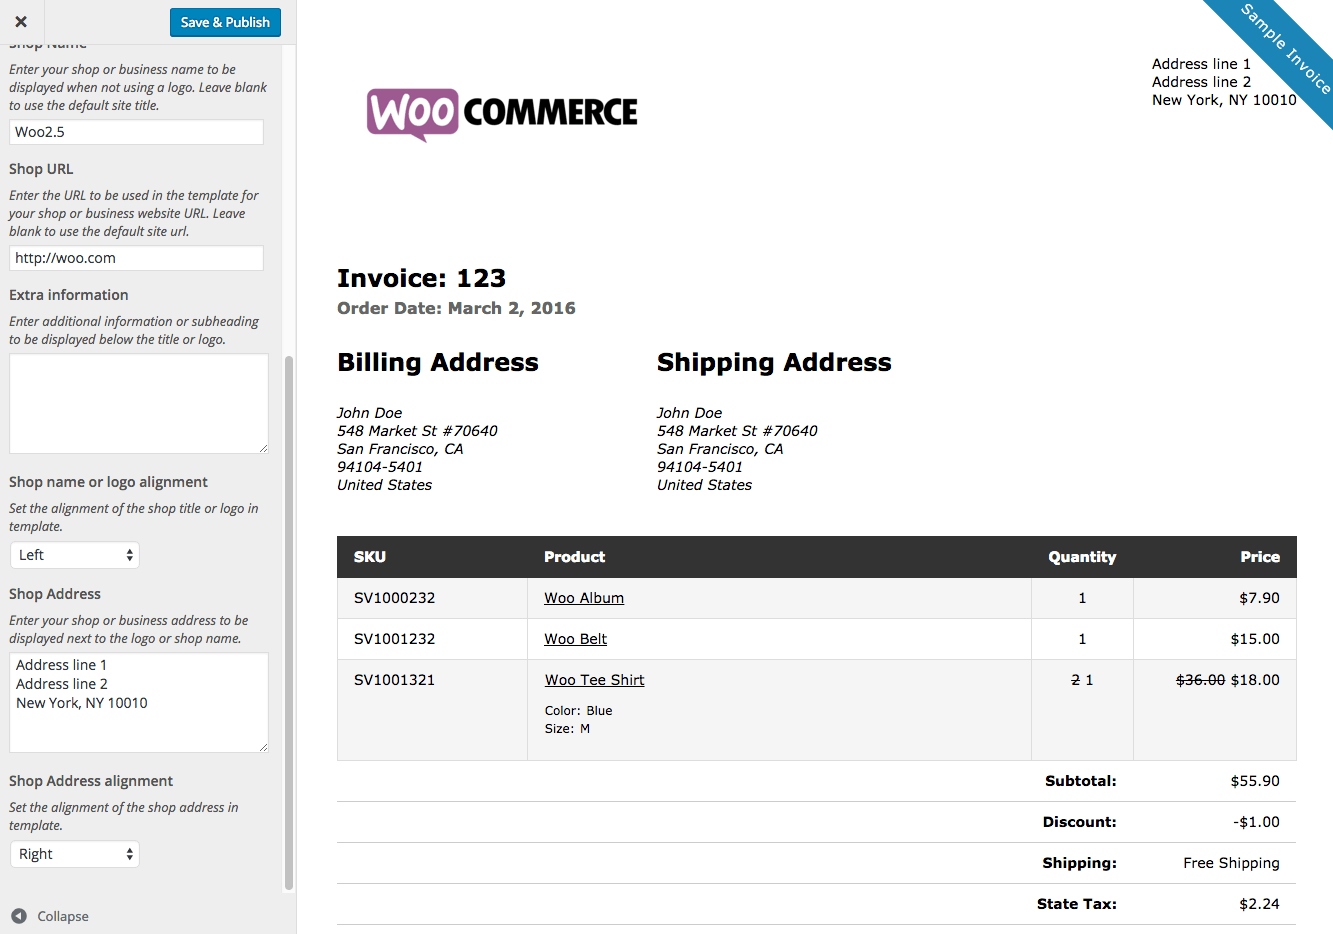 Darkfaderus  Picturesque Woocommerce Print Invoices Amp Packing Lists  Woocommerce Docs With Entrancing Woocommerce Print Invoices  Packing Lists Customizer With Beautiful Property Tax Receipts Also Miami Dade County Local Business Tax Receipt Application Form In Addition Receipt For Shepards Pie And Clothes Receipt As Well As Receipt Printer Font Additionally  Thermal Receipt Paper From Docswoocommercecom With Darkfaderus  Entrancing Woocommerce Print Invoices Amp Packing Lists  Woocommerce Docs With Beautiful Woocommerce Print Invoices  Packing Lists Customizer And Picturesque Property Tax Receipts Also Miami Dade County Local Business Tax Receipt Application Form In Addition Receipt For Shepards Pie From Docswoocommercecom